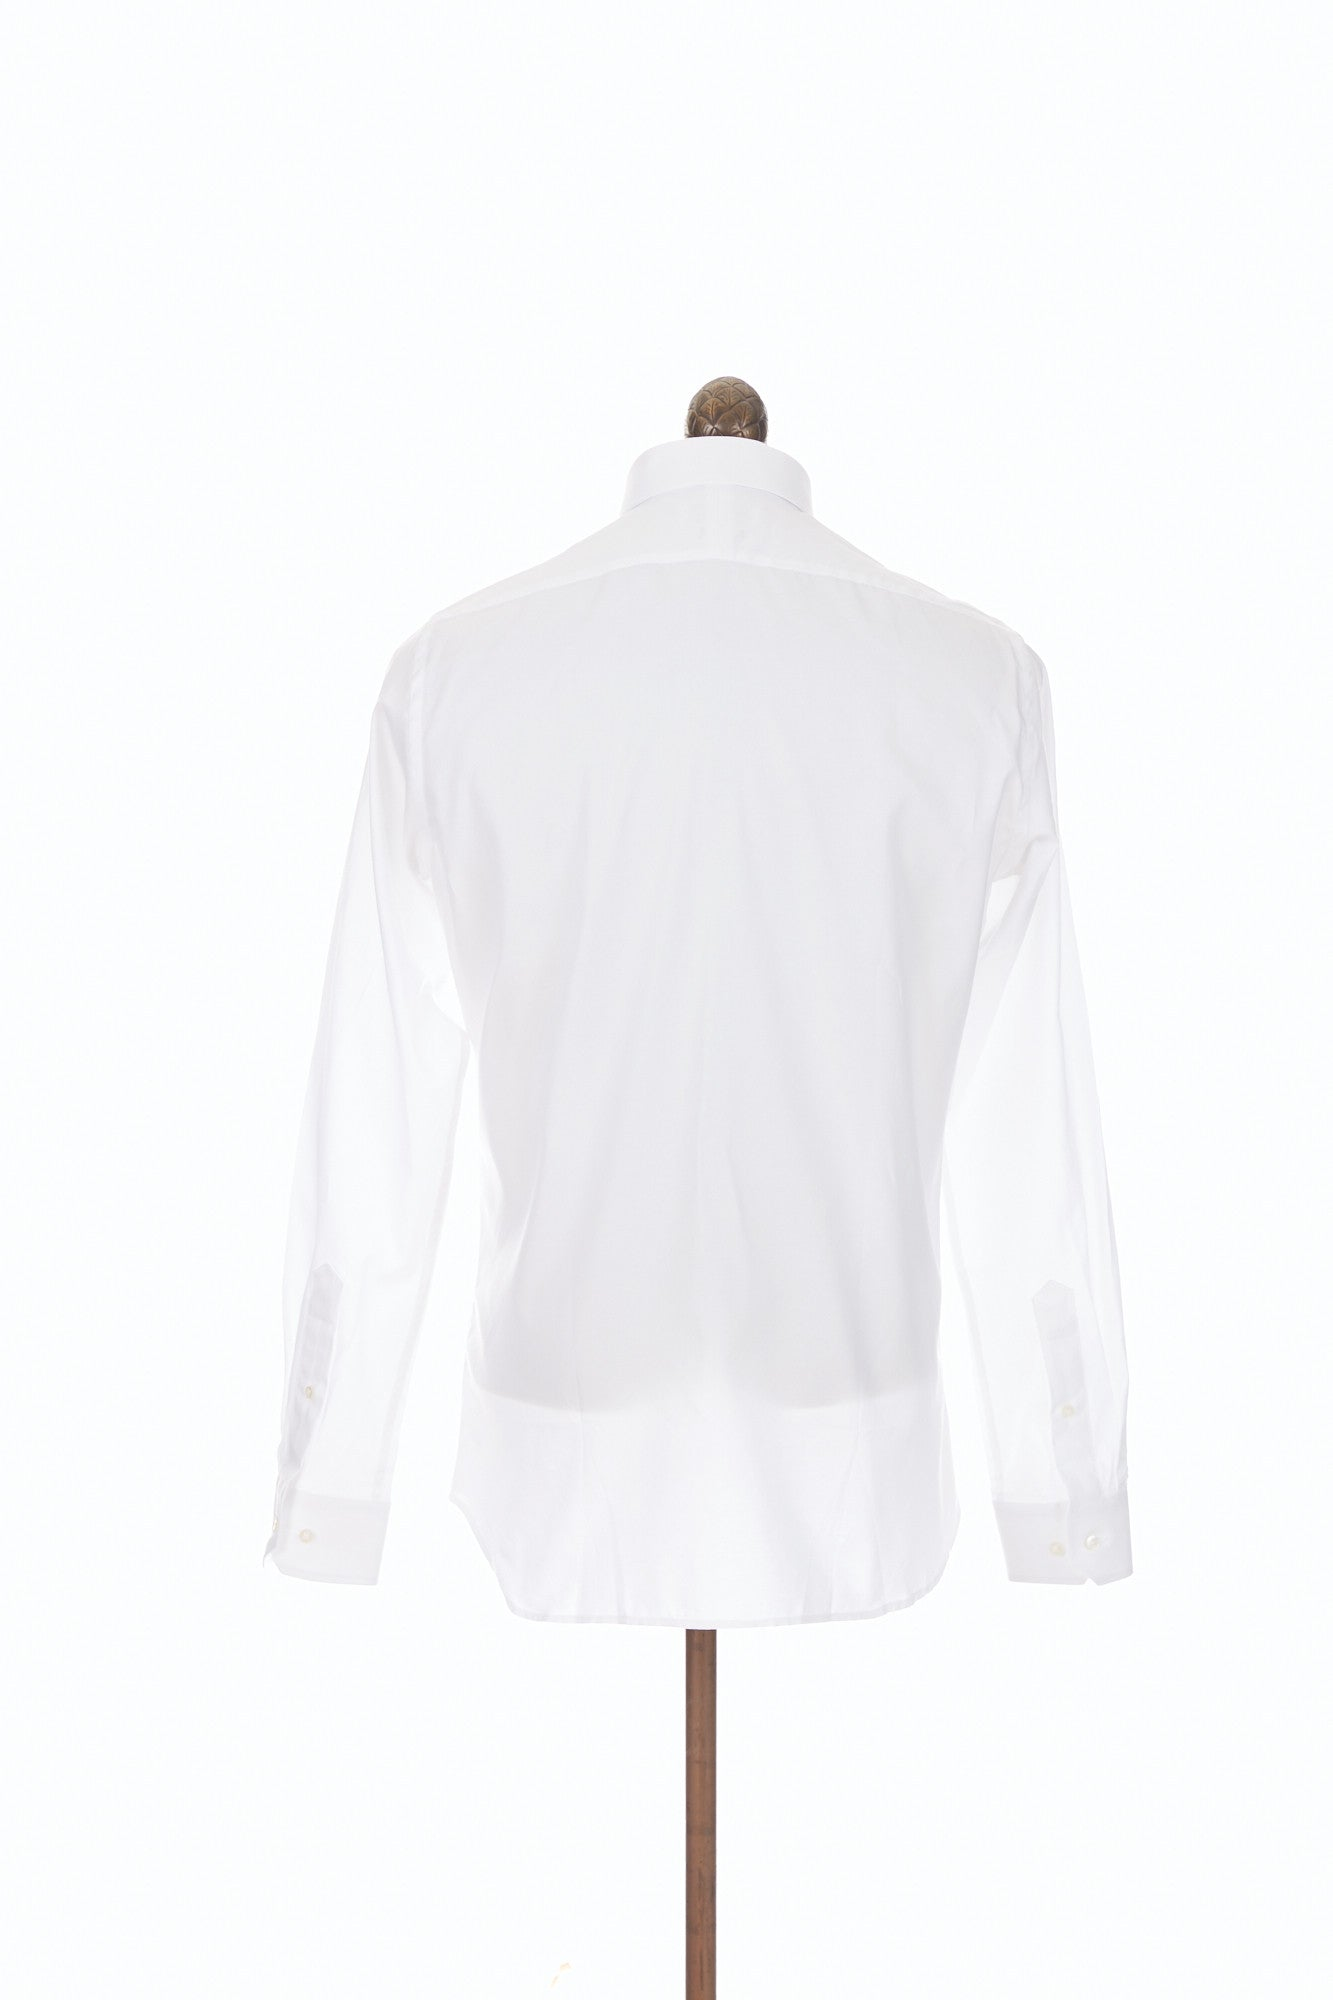 Blazer for Men White Oxford Button-Down Dress Shirt Back